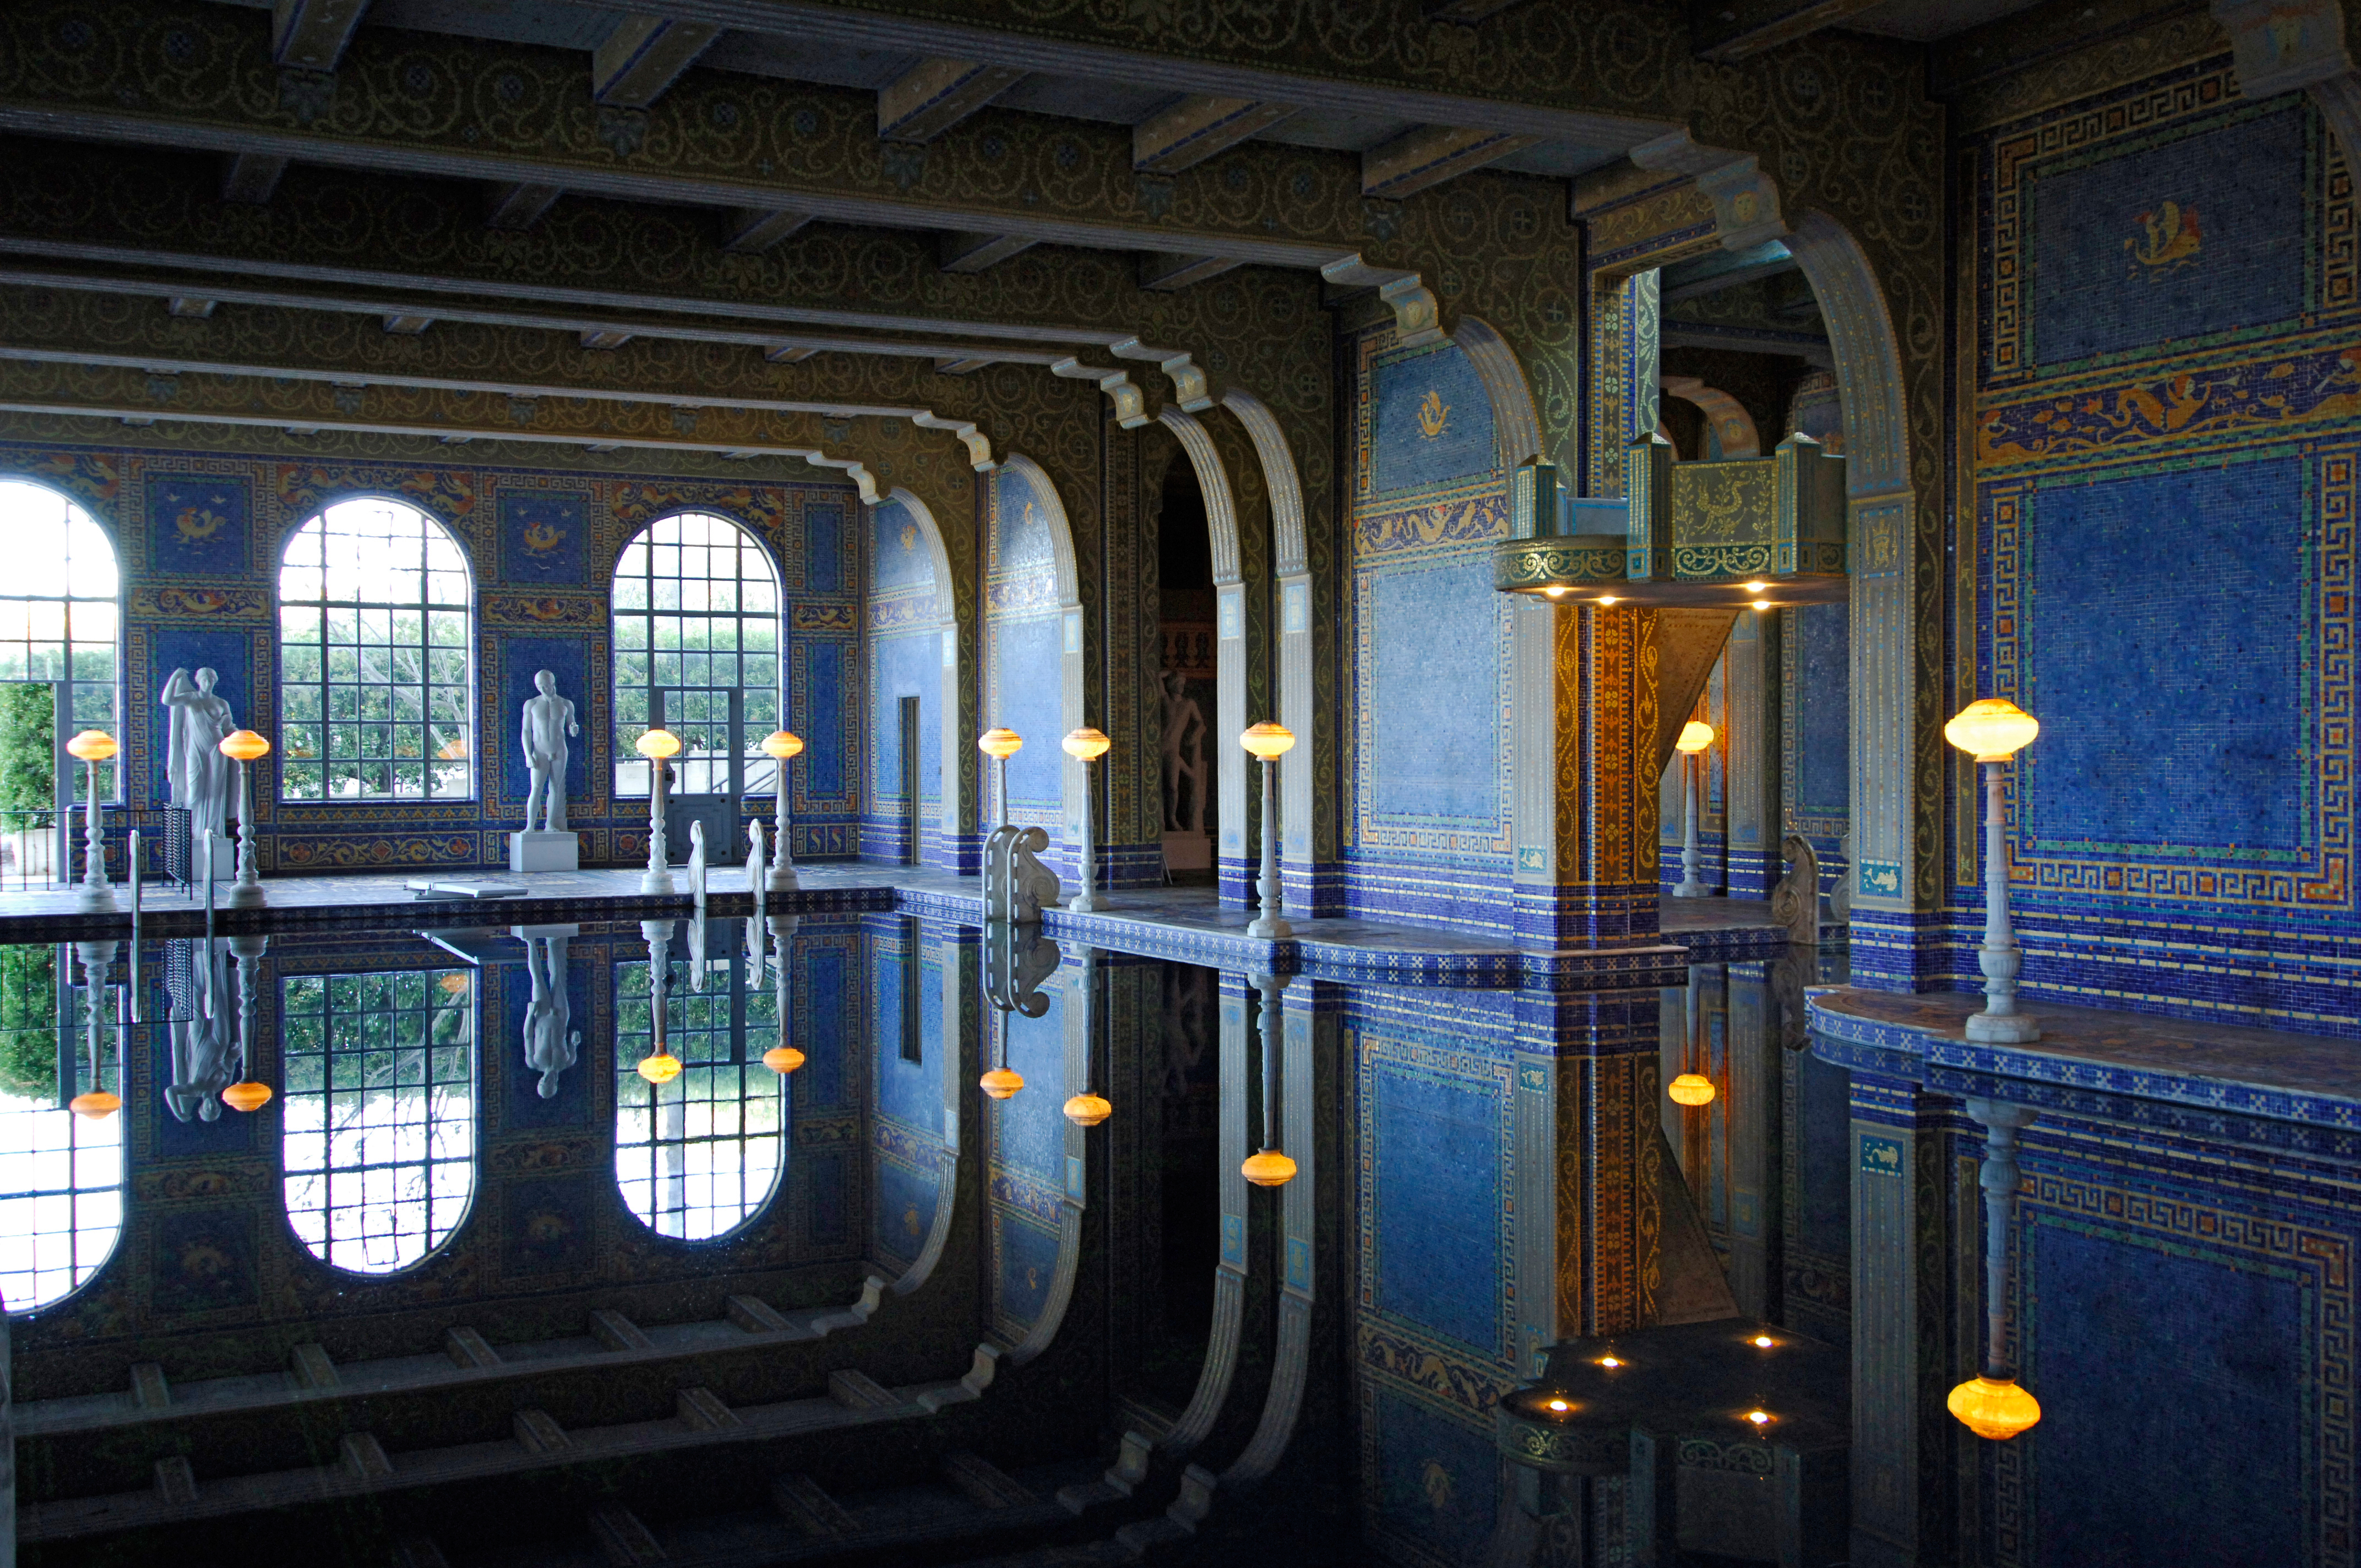 Indoor Pool at Hearst Castle, designed in style of Roman baths.